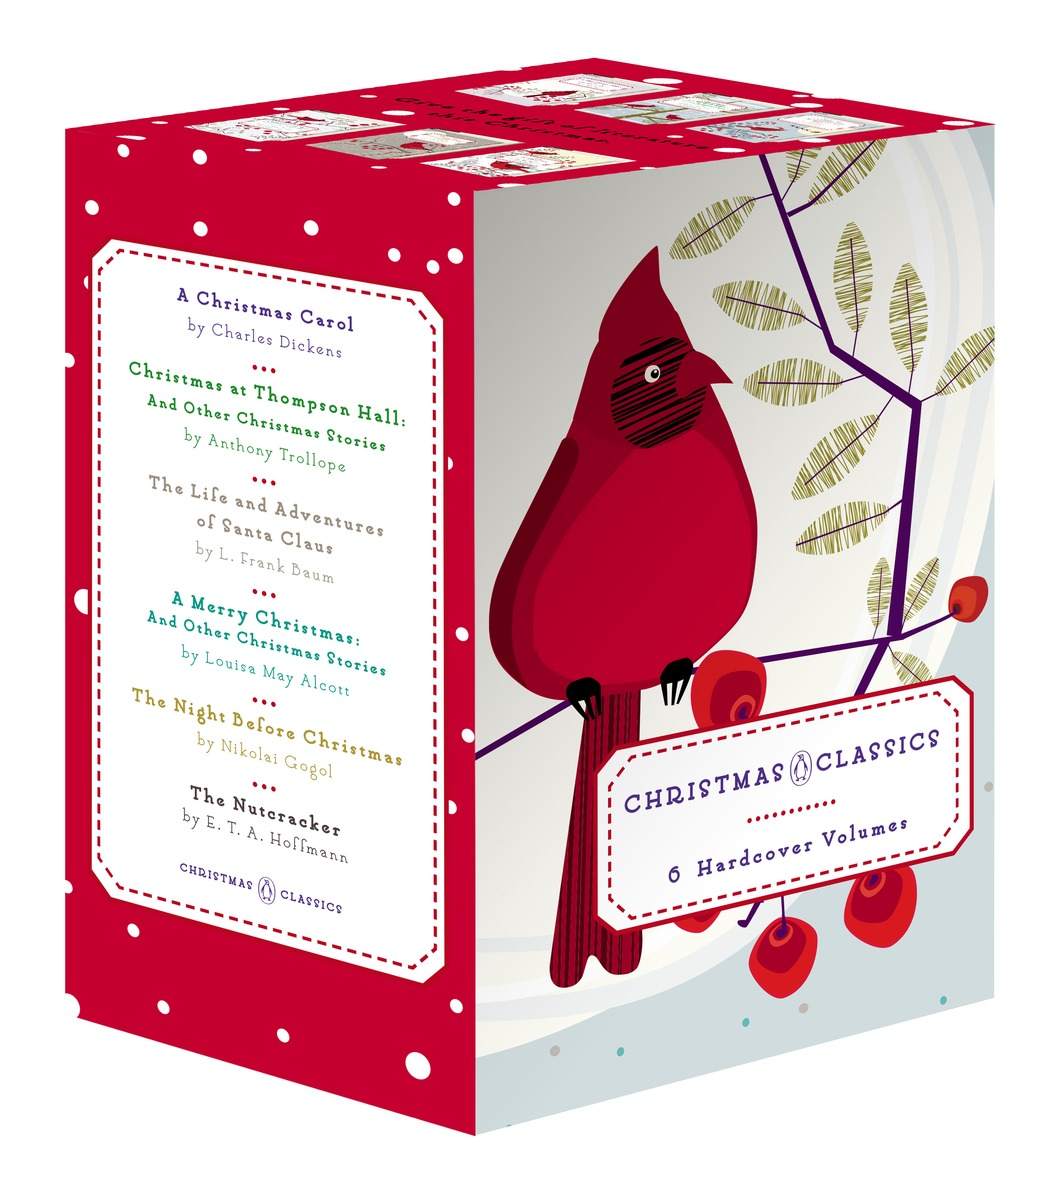 Penguin Christmas Classics 6-Volume Boxed Set penguin ice breaking save the penguin great family toys gifts desktop game fun game who make the penguin fall off lose this game